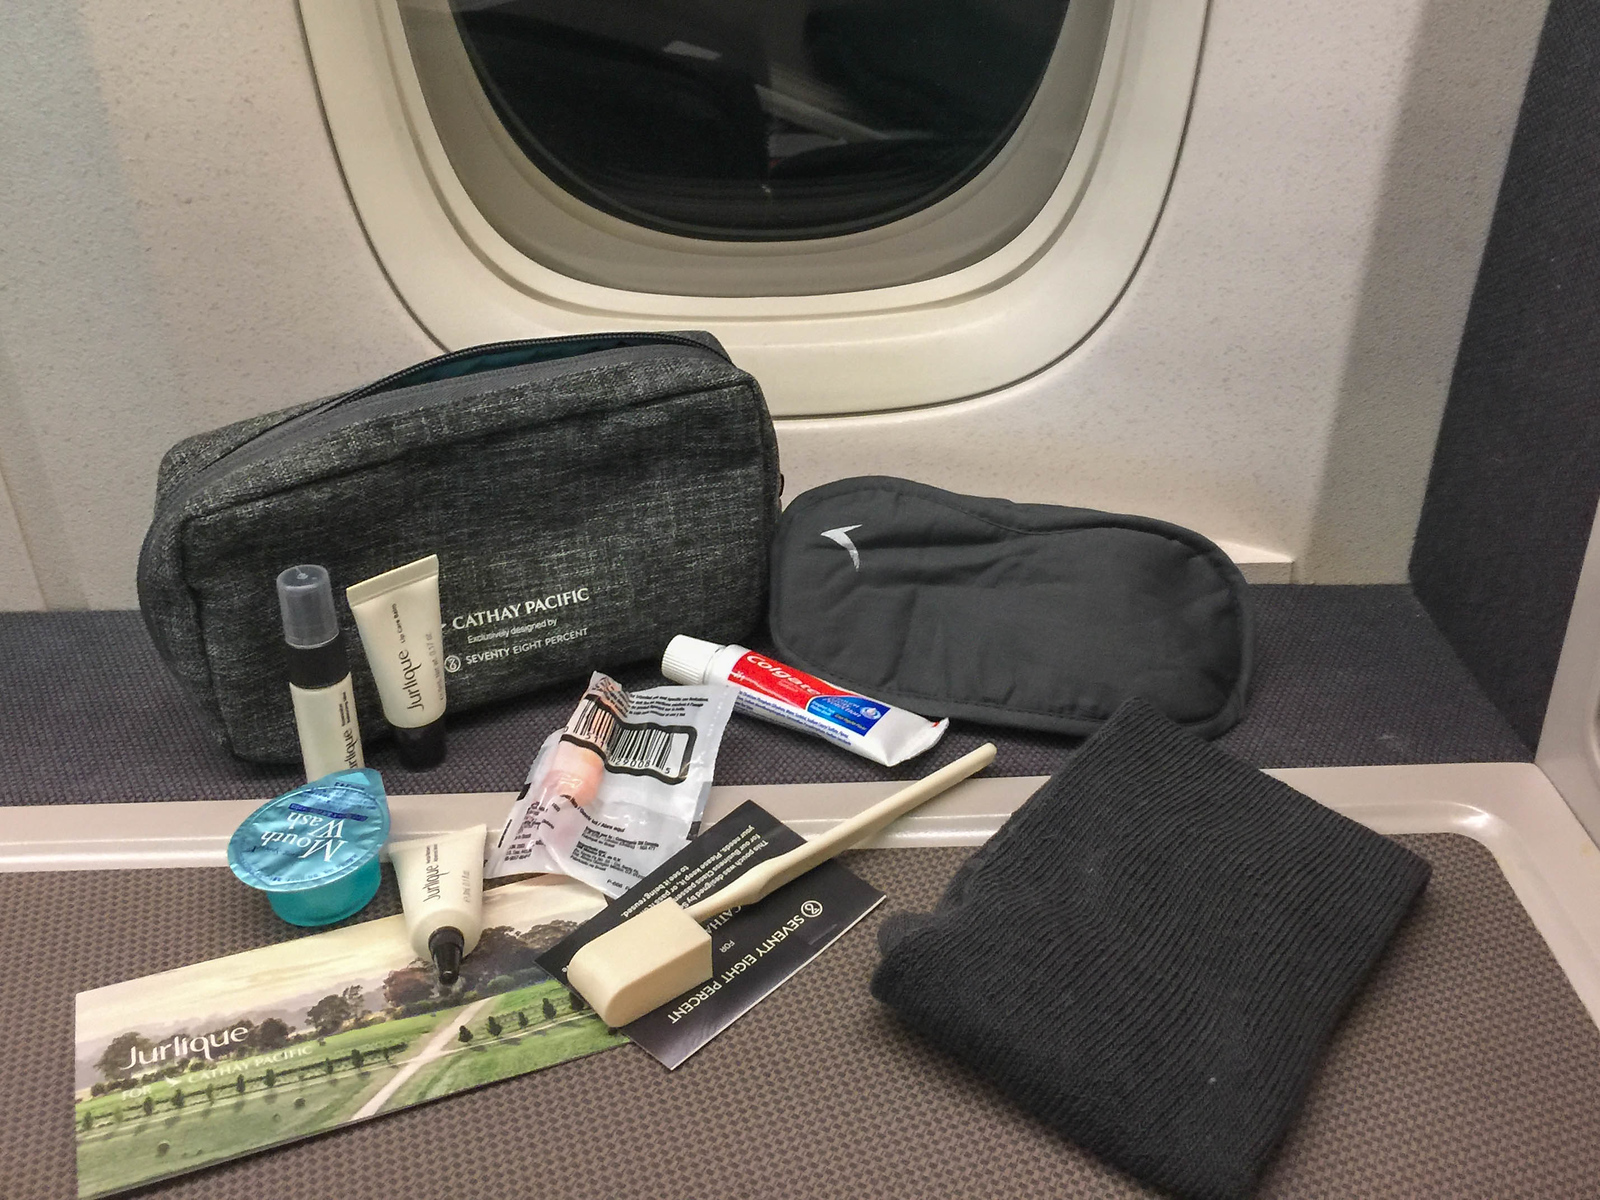 Amenity kit in Cathay Pacific Premium Economy class